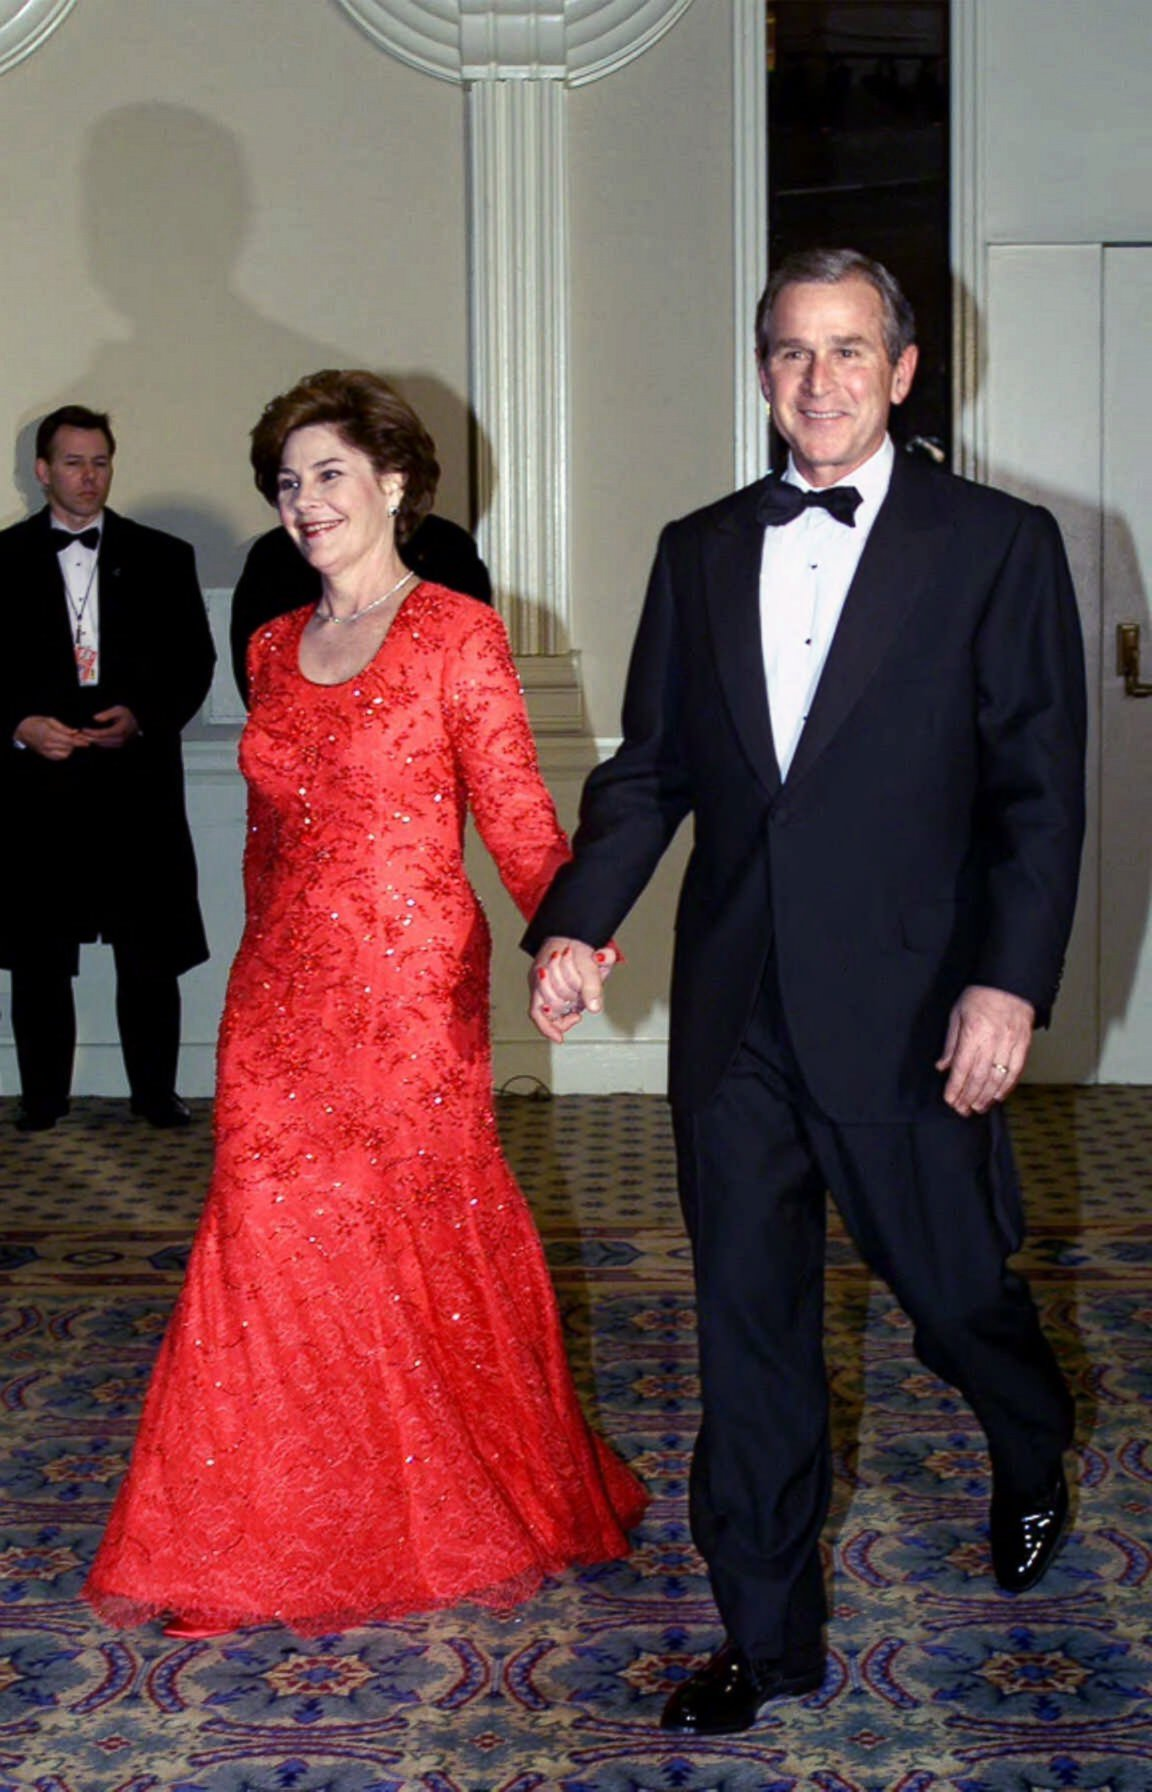 Where George w and laura bush can defined?